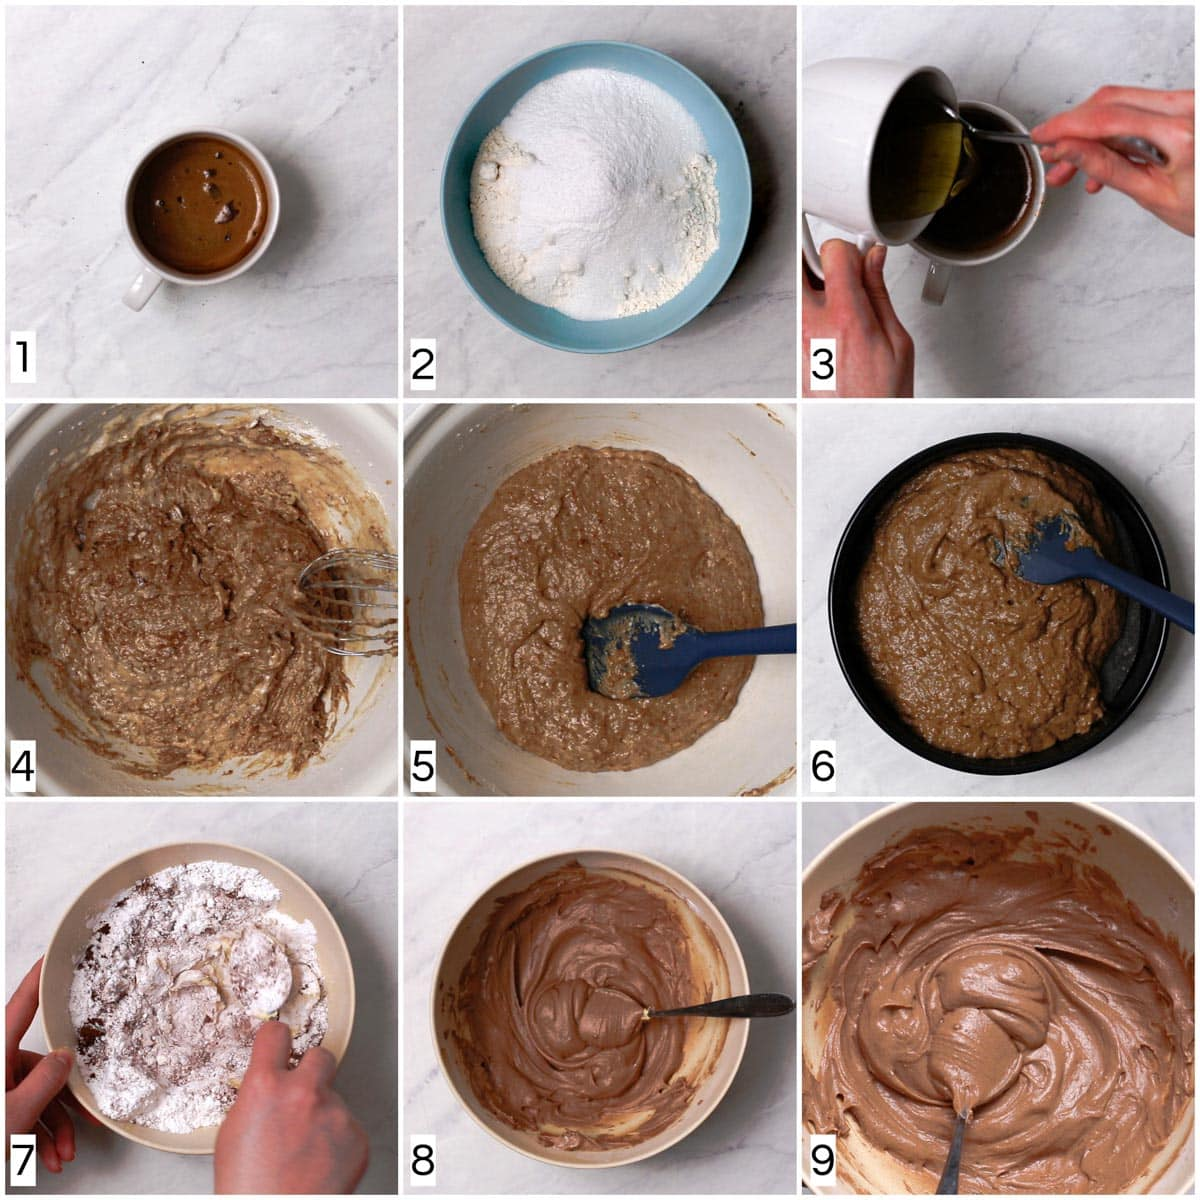 A collage of nine images showing all the steps in making a coffee cake.